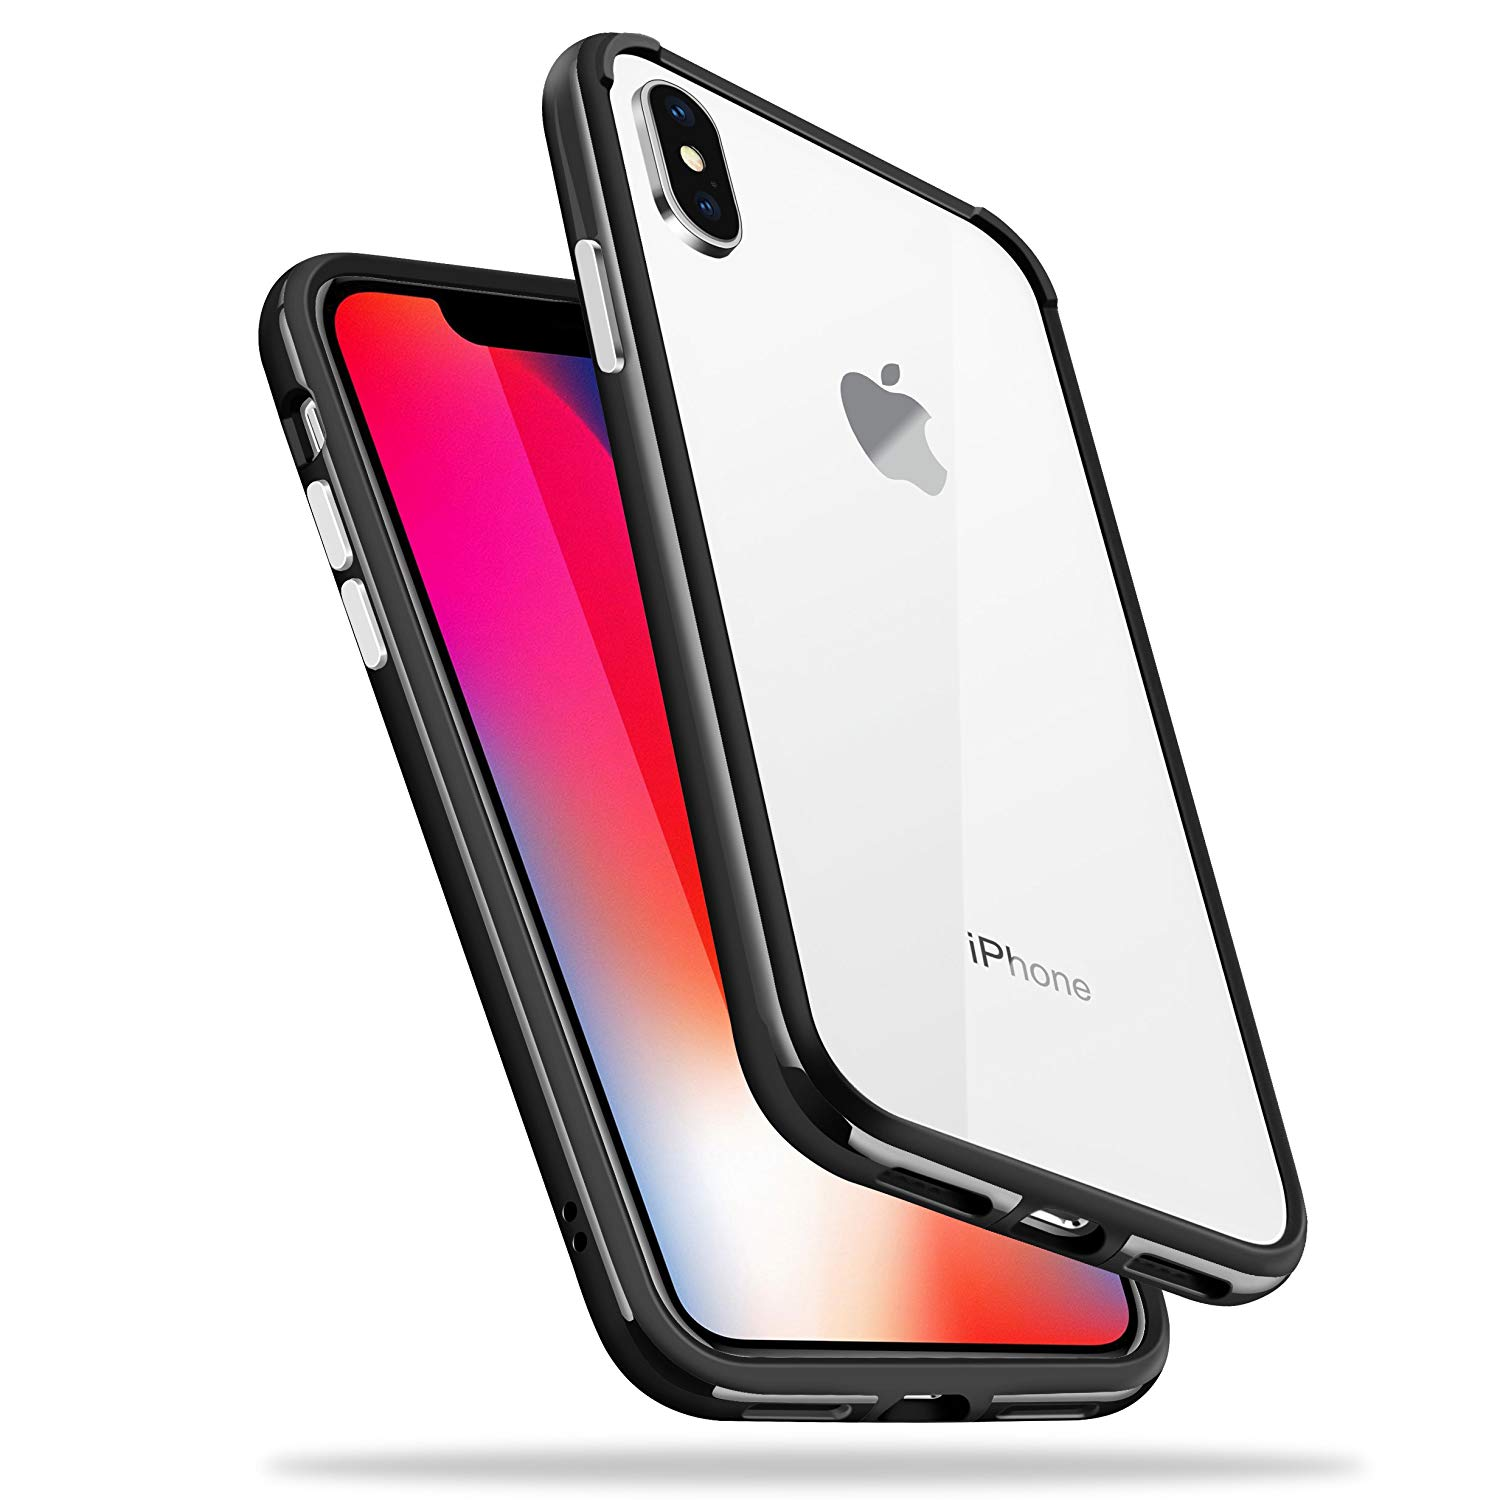 YOMETOME iPhone X Shockproof Anti-Scratch Case